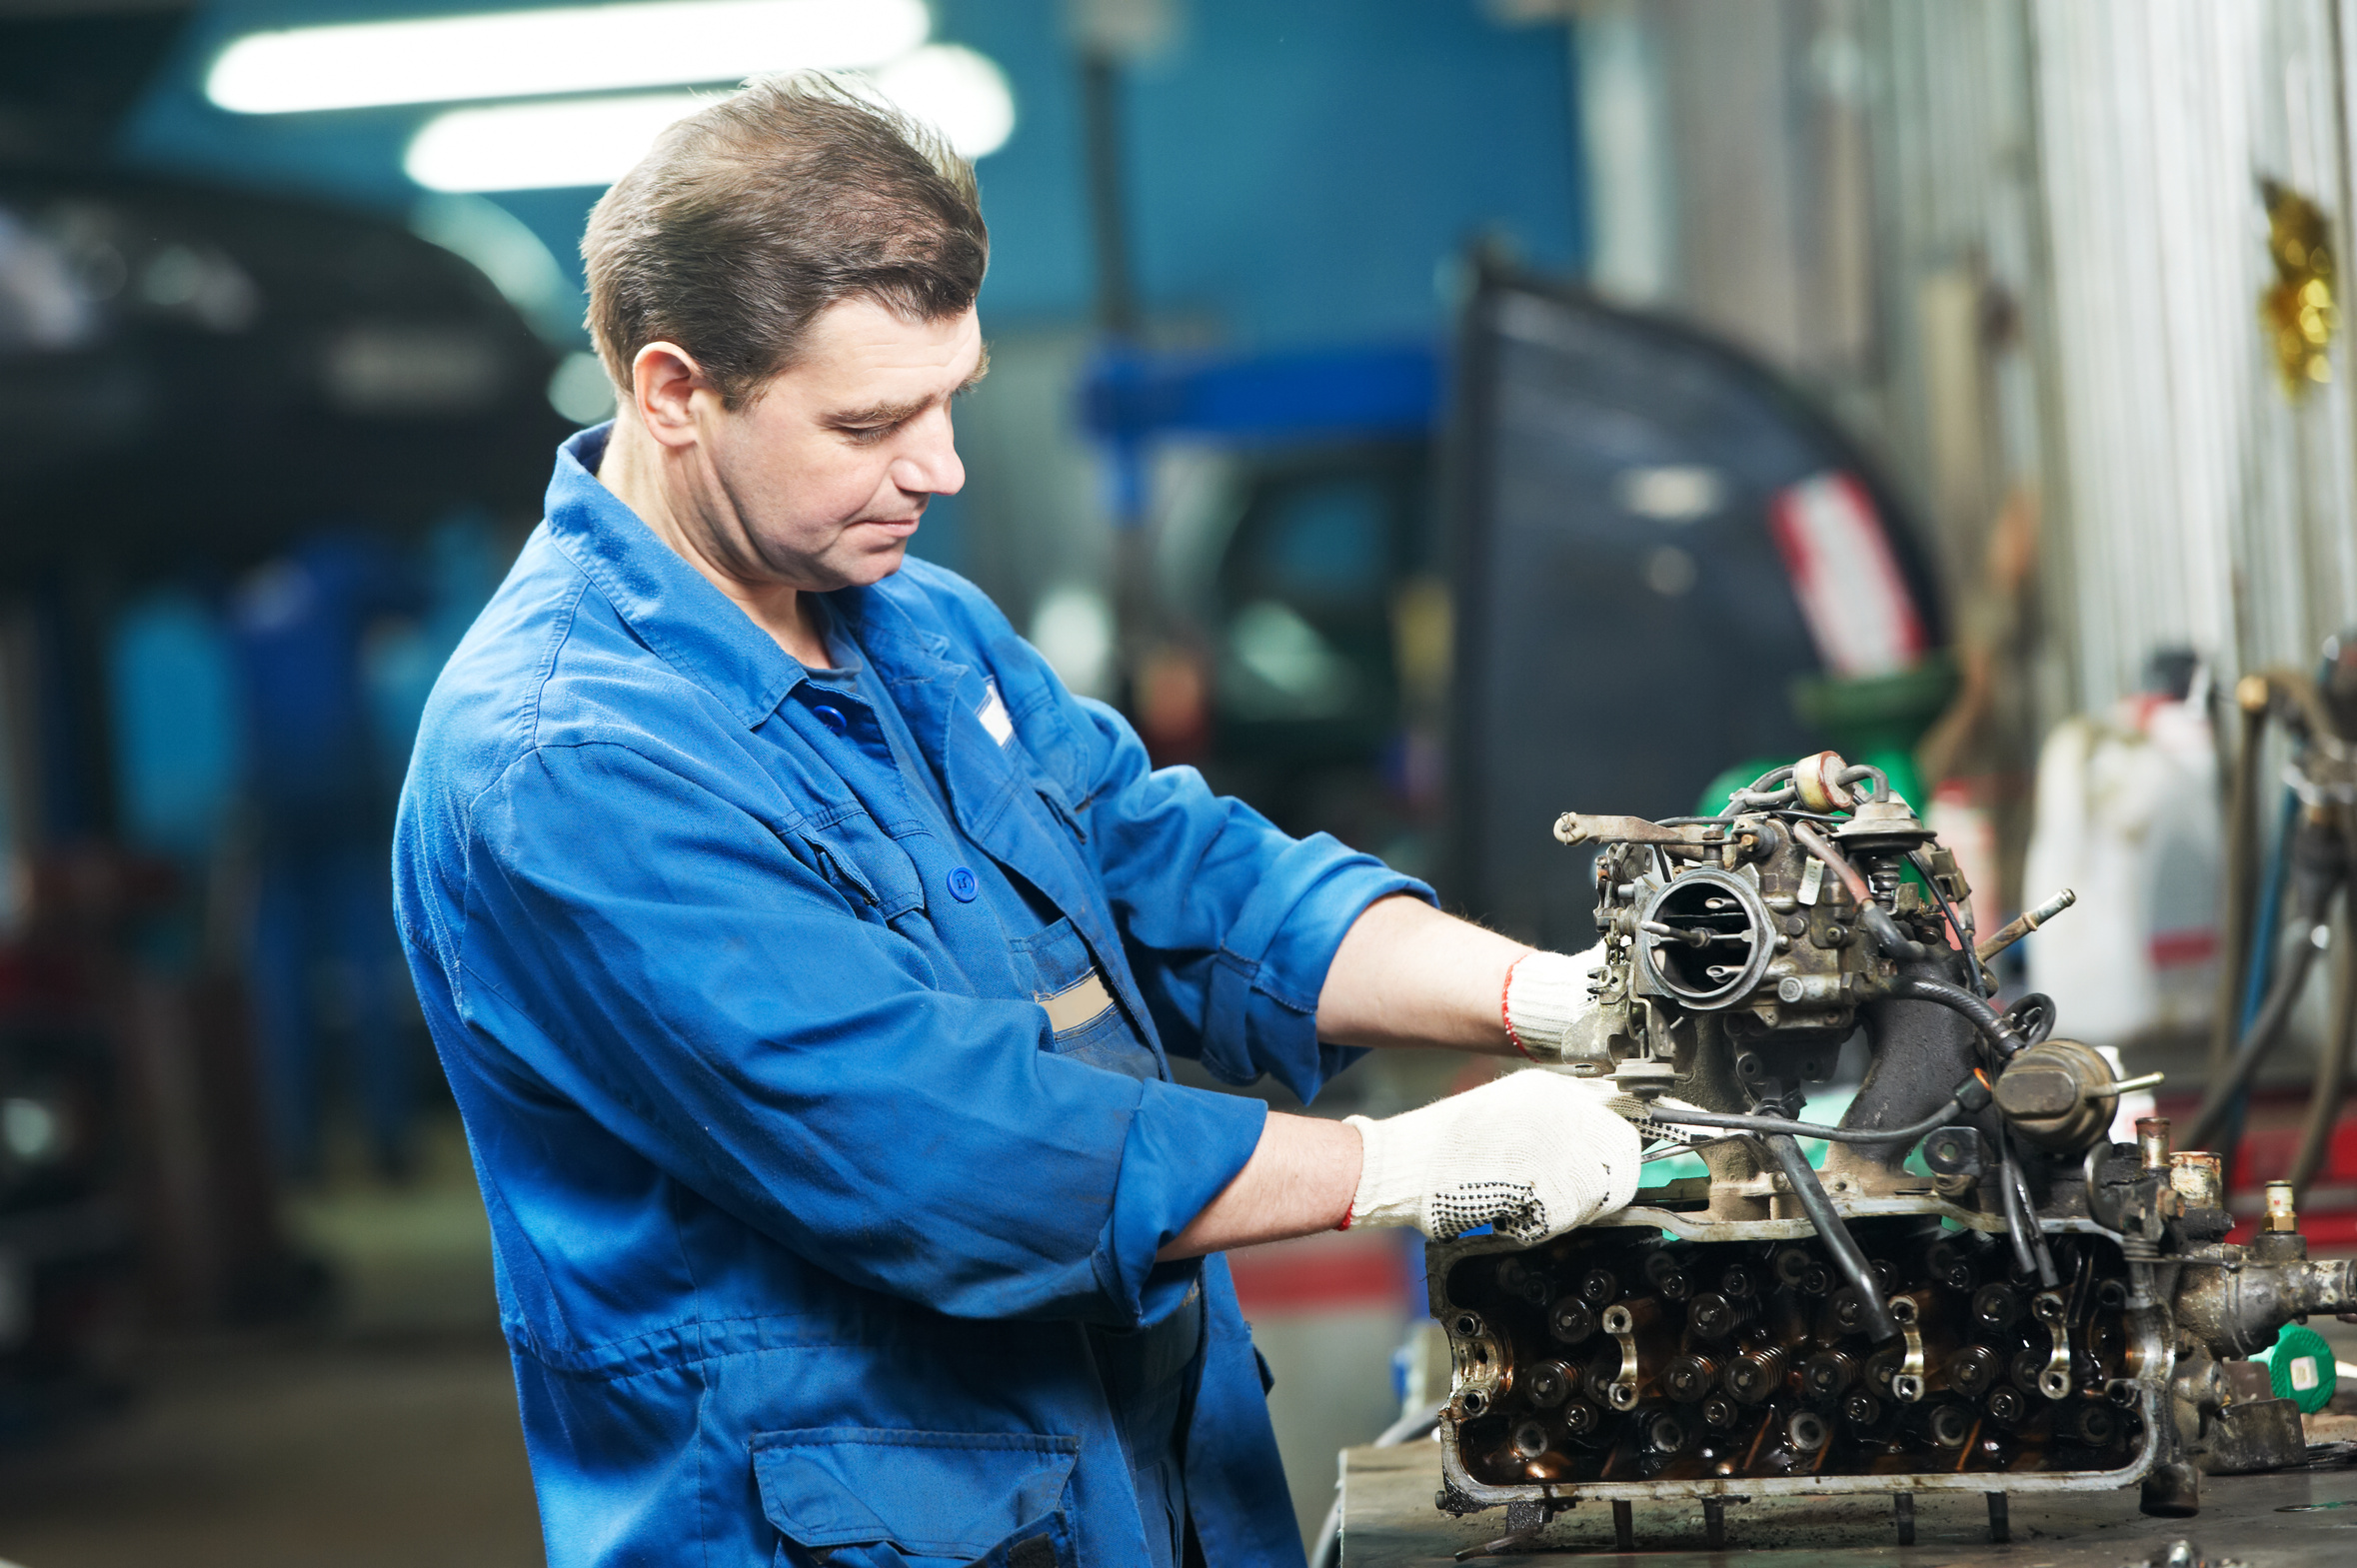 automotive mechanic disassembling car engine with spanner during automobile maintenance at repair service station